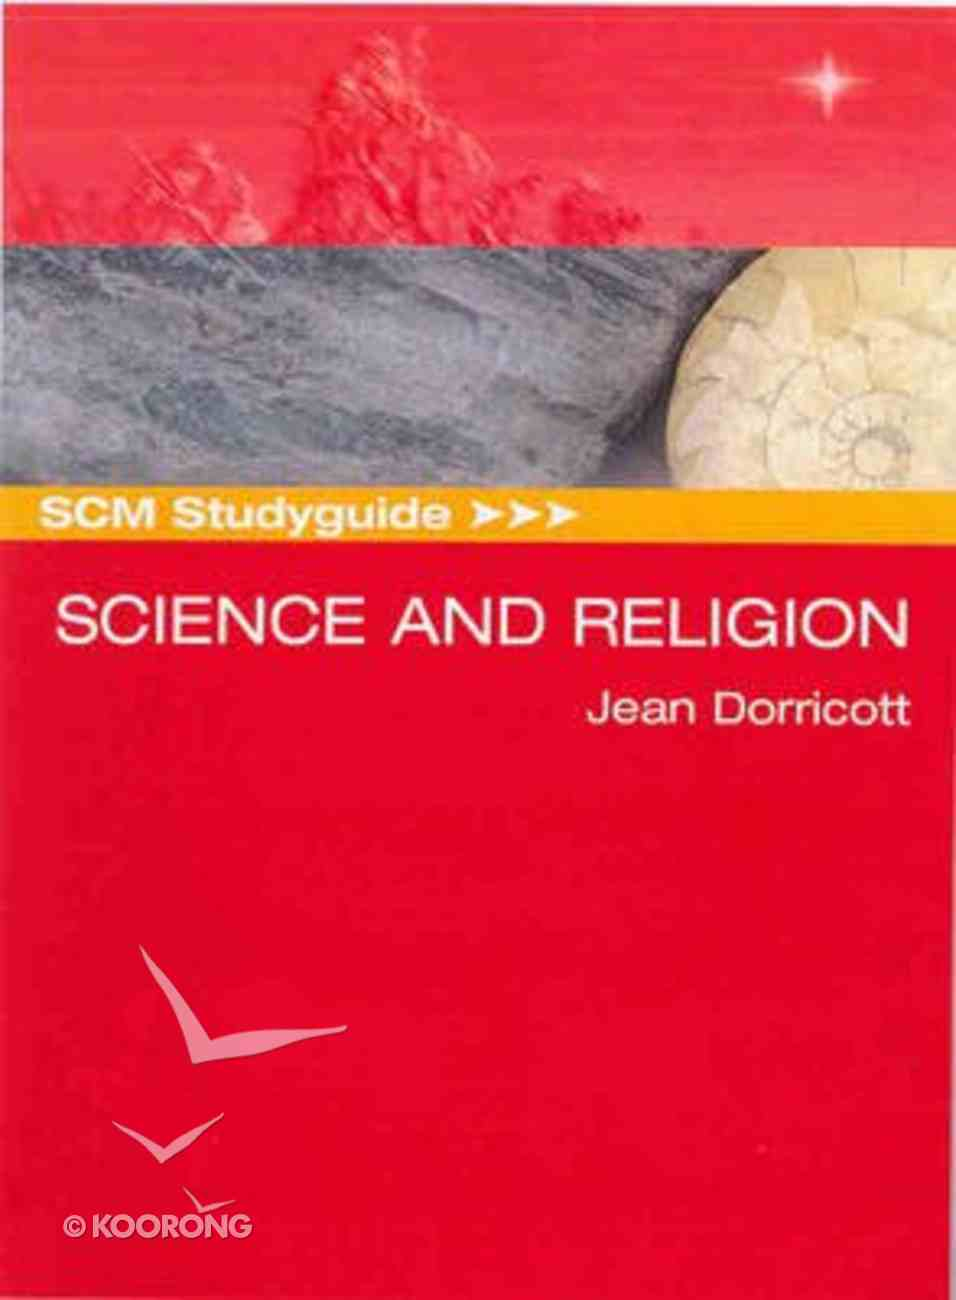 Scm Study Guide: Science and Religion (Scm Studyguide Series) Paperback